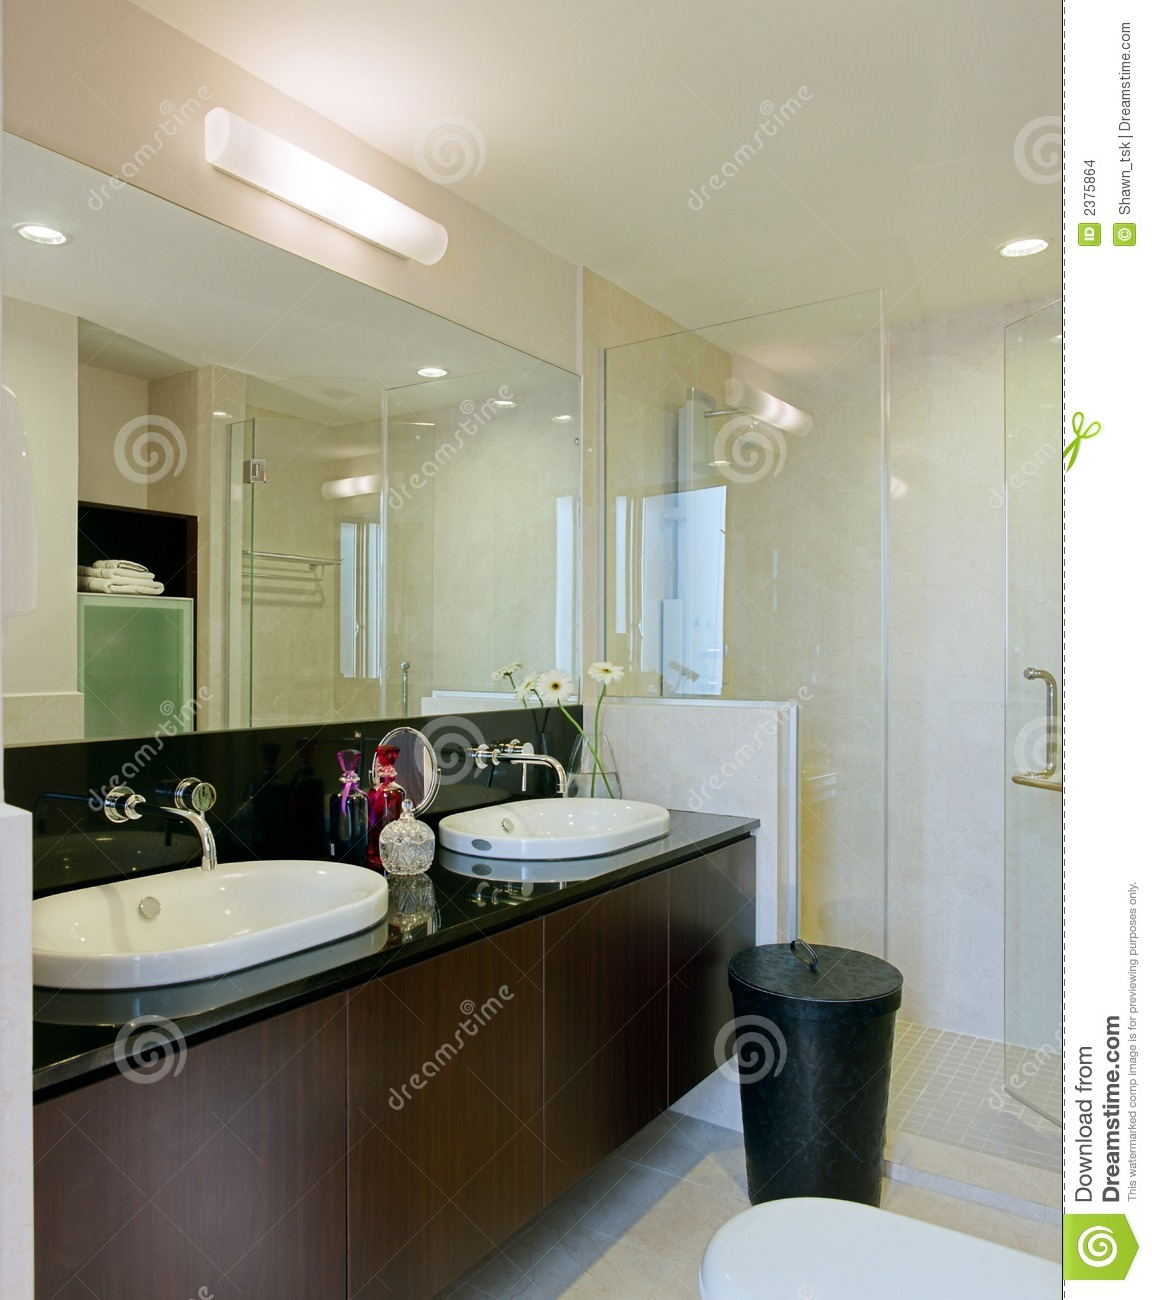 Interior Design Bathroom Stock Photo Image Of Cabinet 2375864